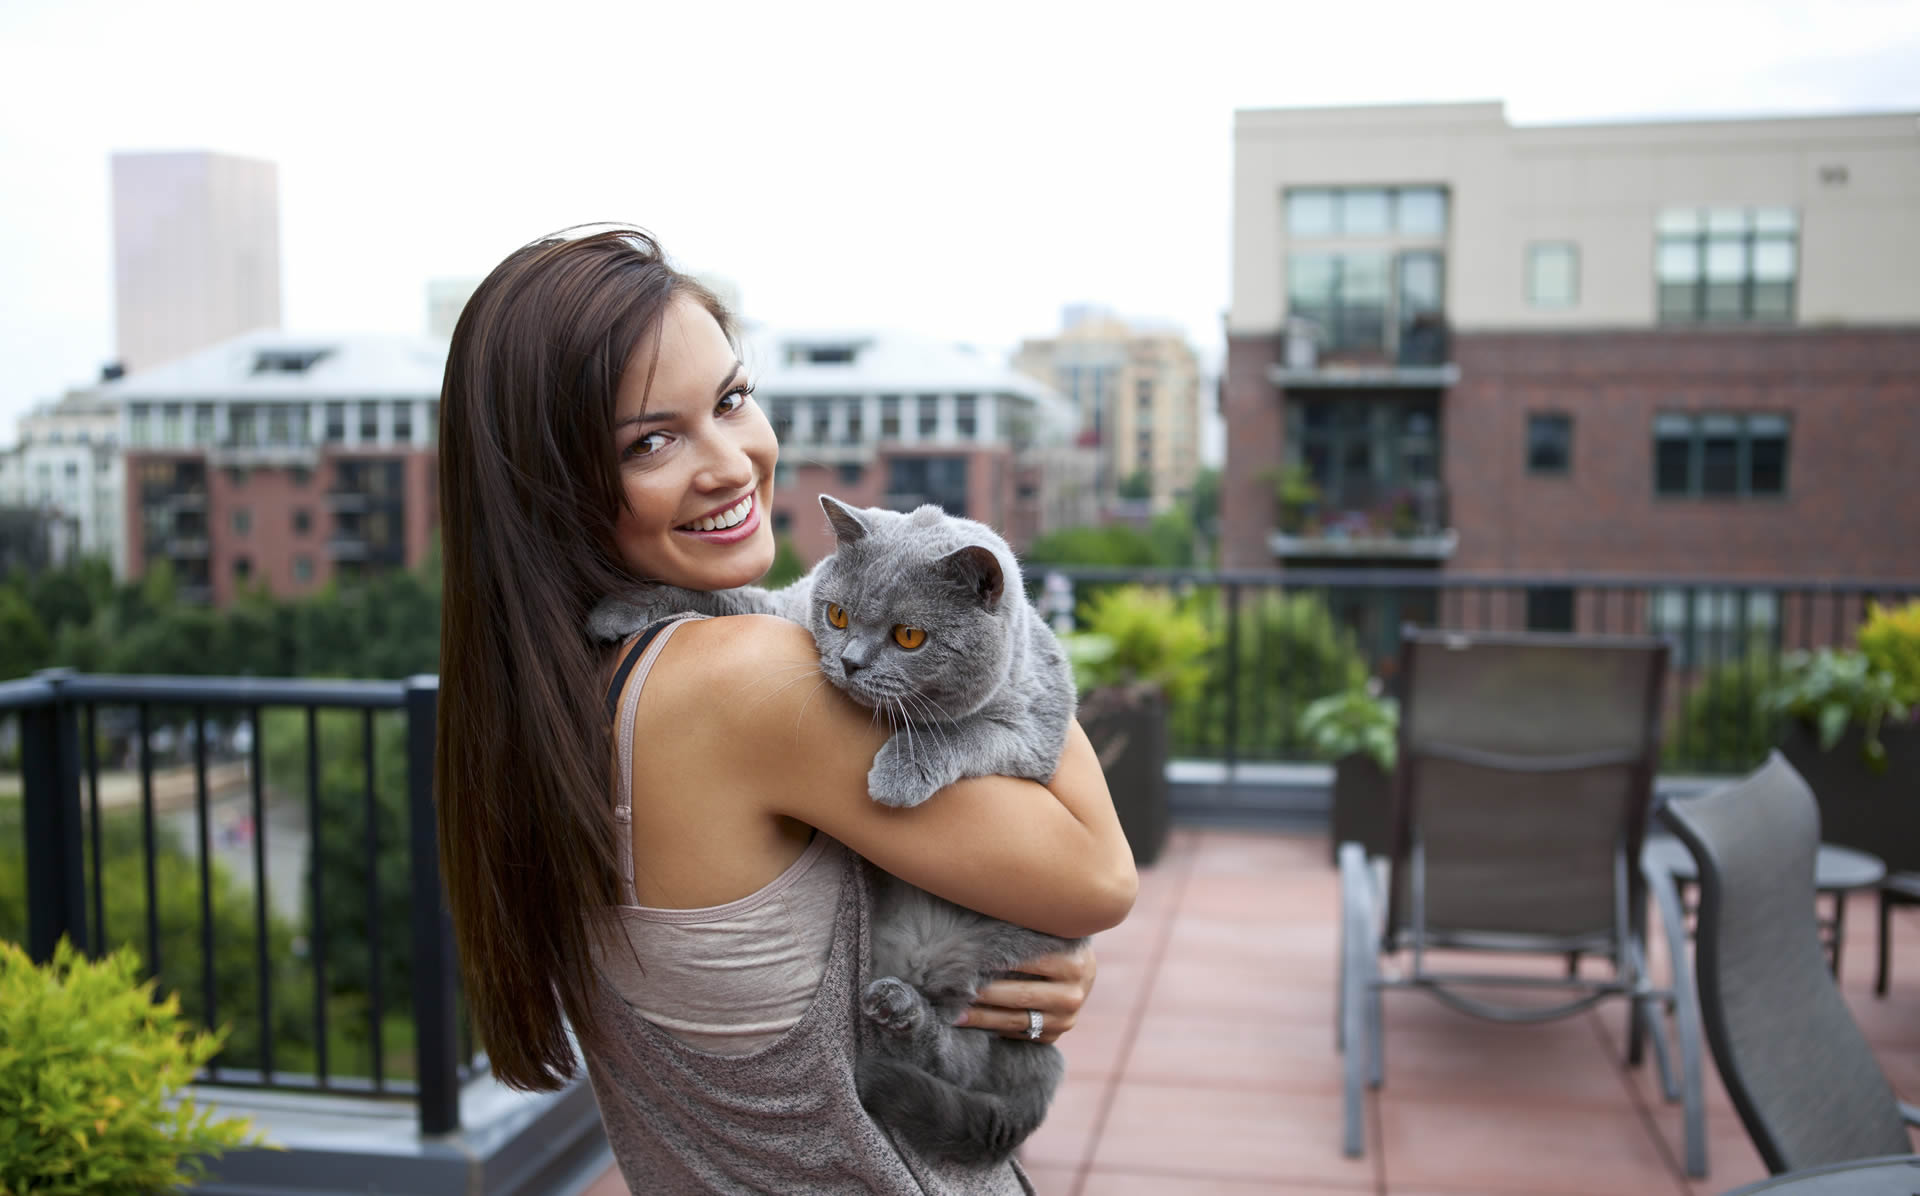 City woman with cat